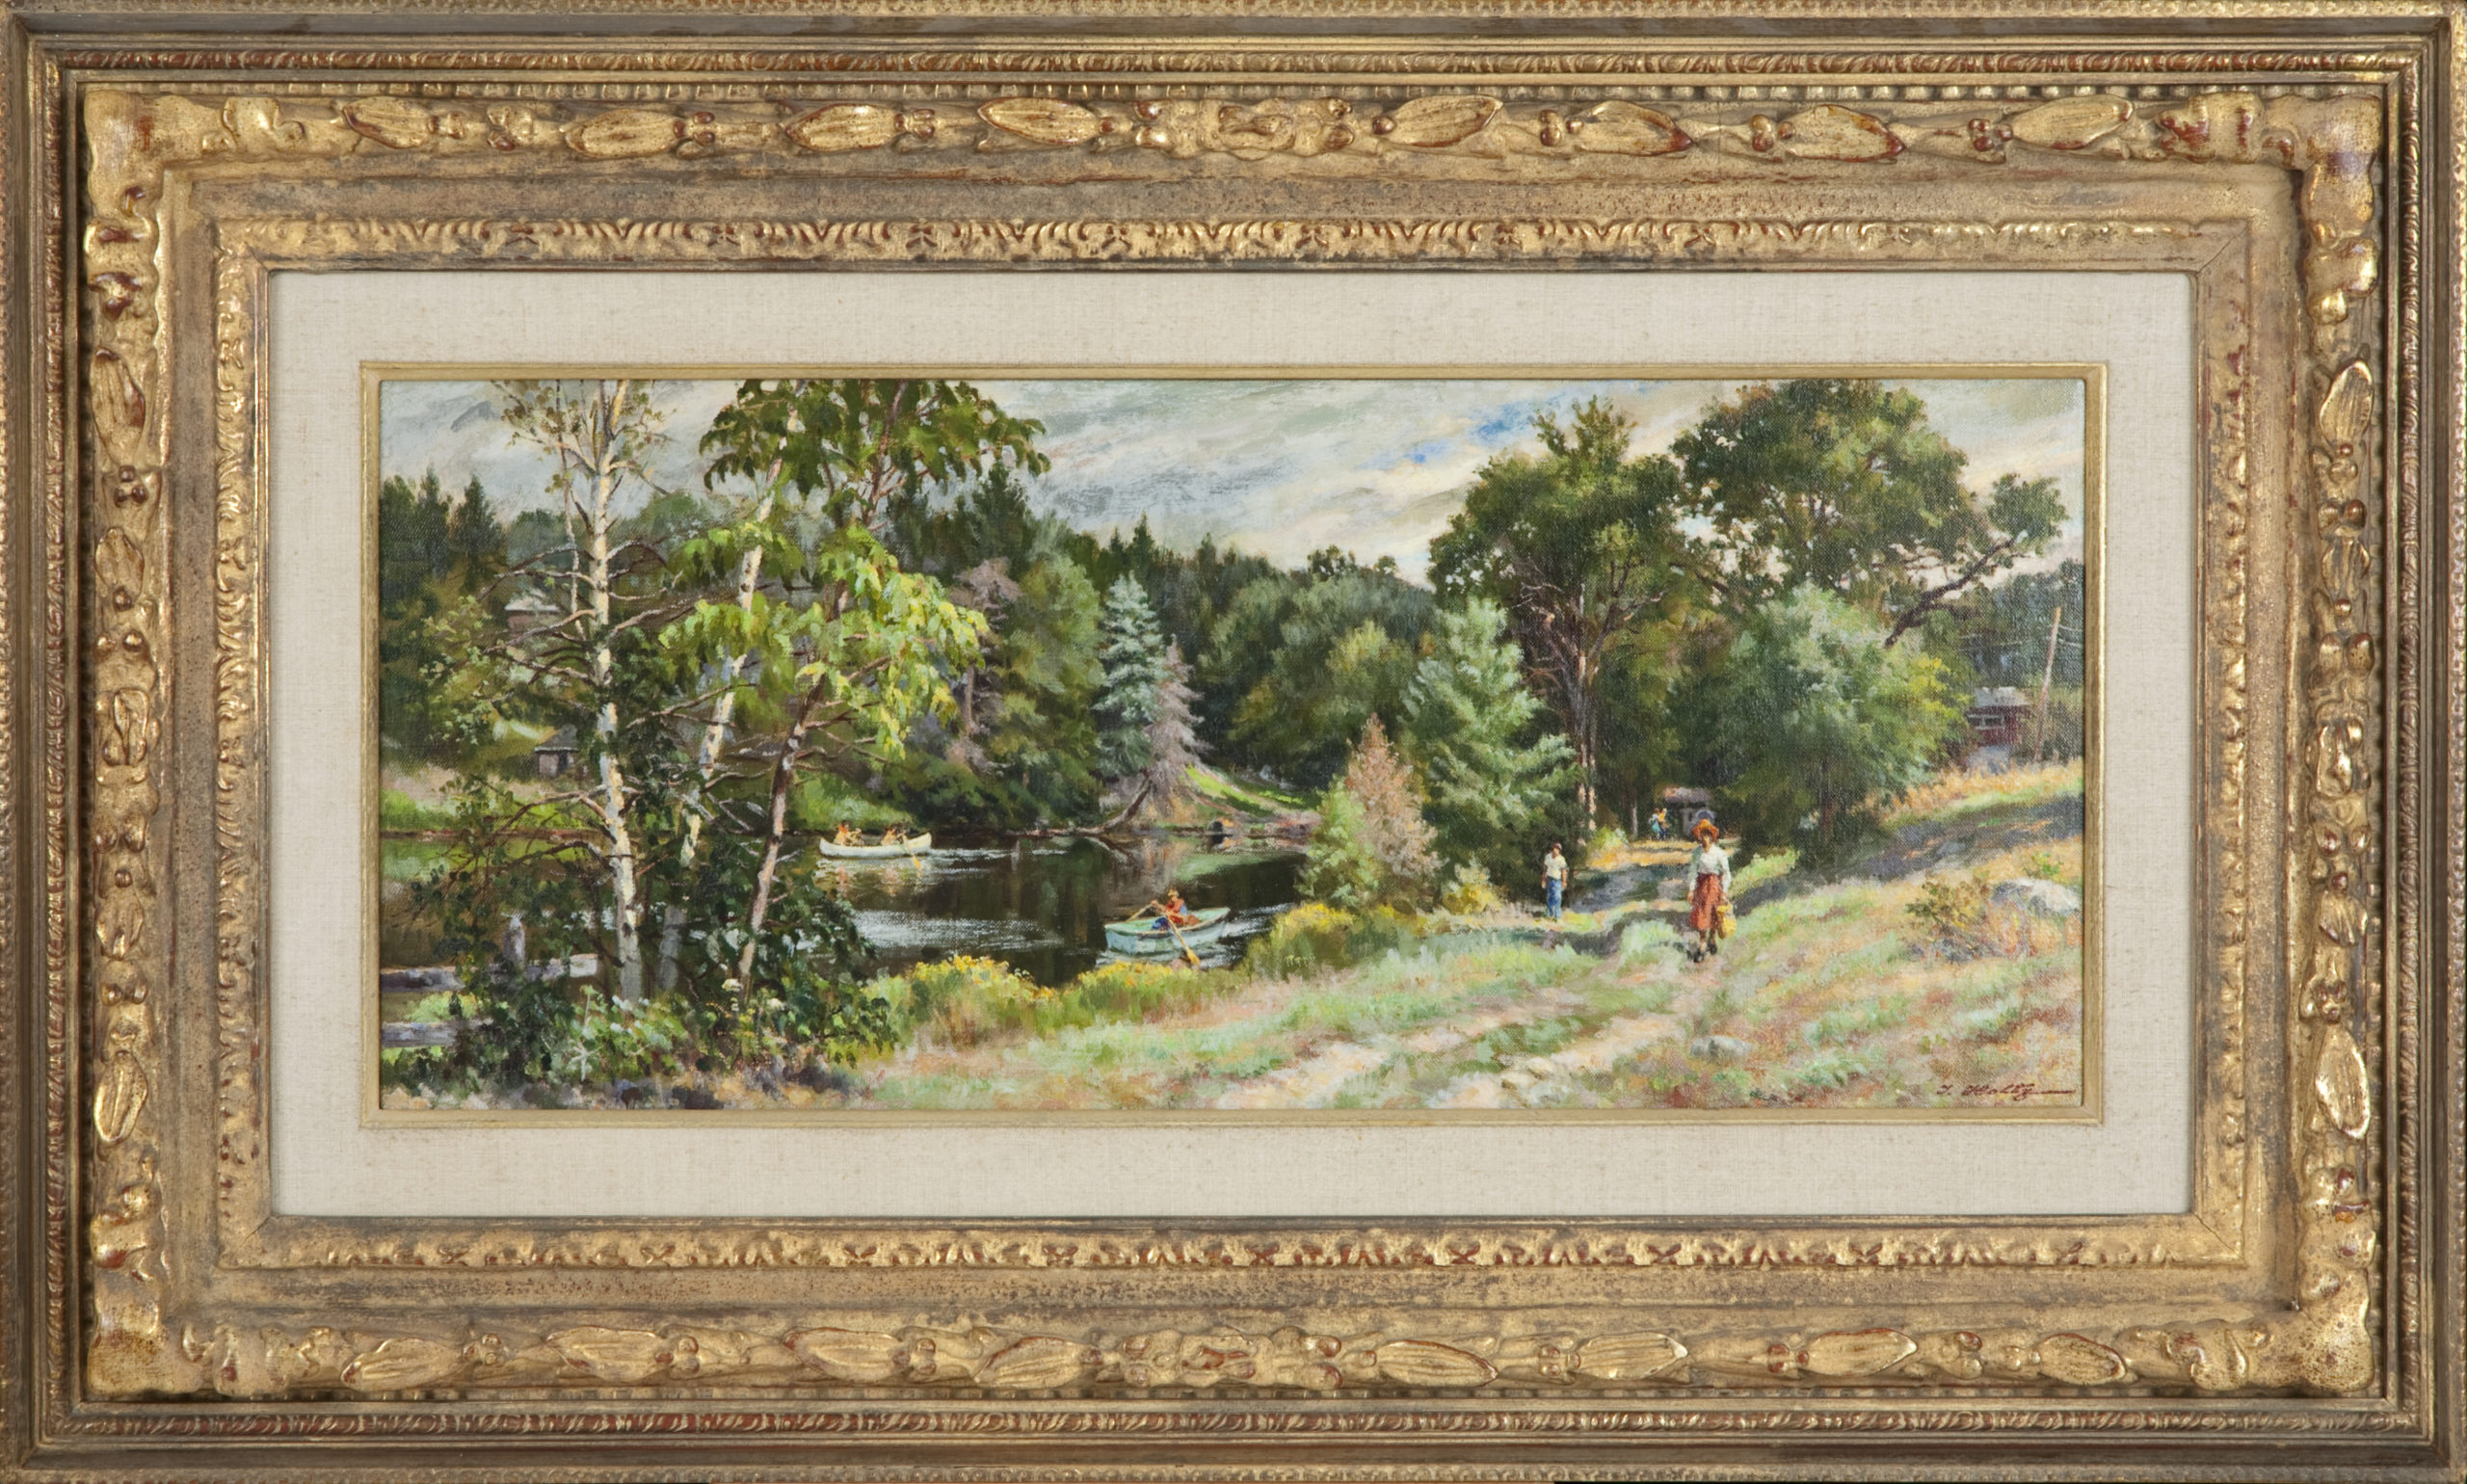 063 Summer in the Poconos 1979 - Oil on Canvas - 28 x 12 - Frame: 40 x 24 x 3